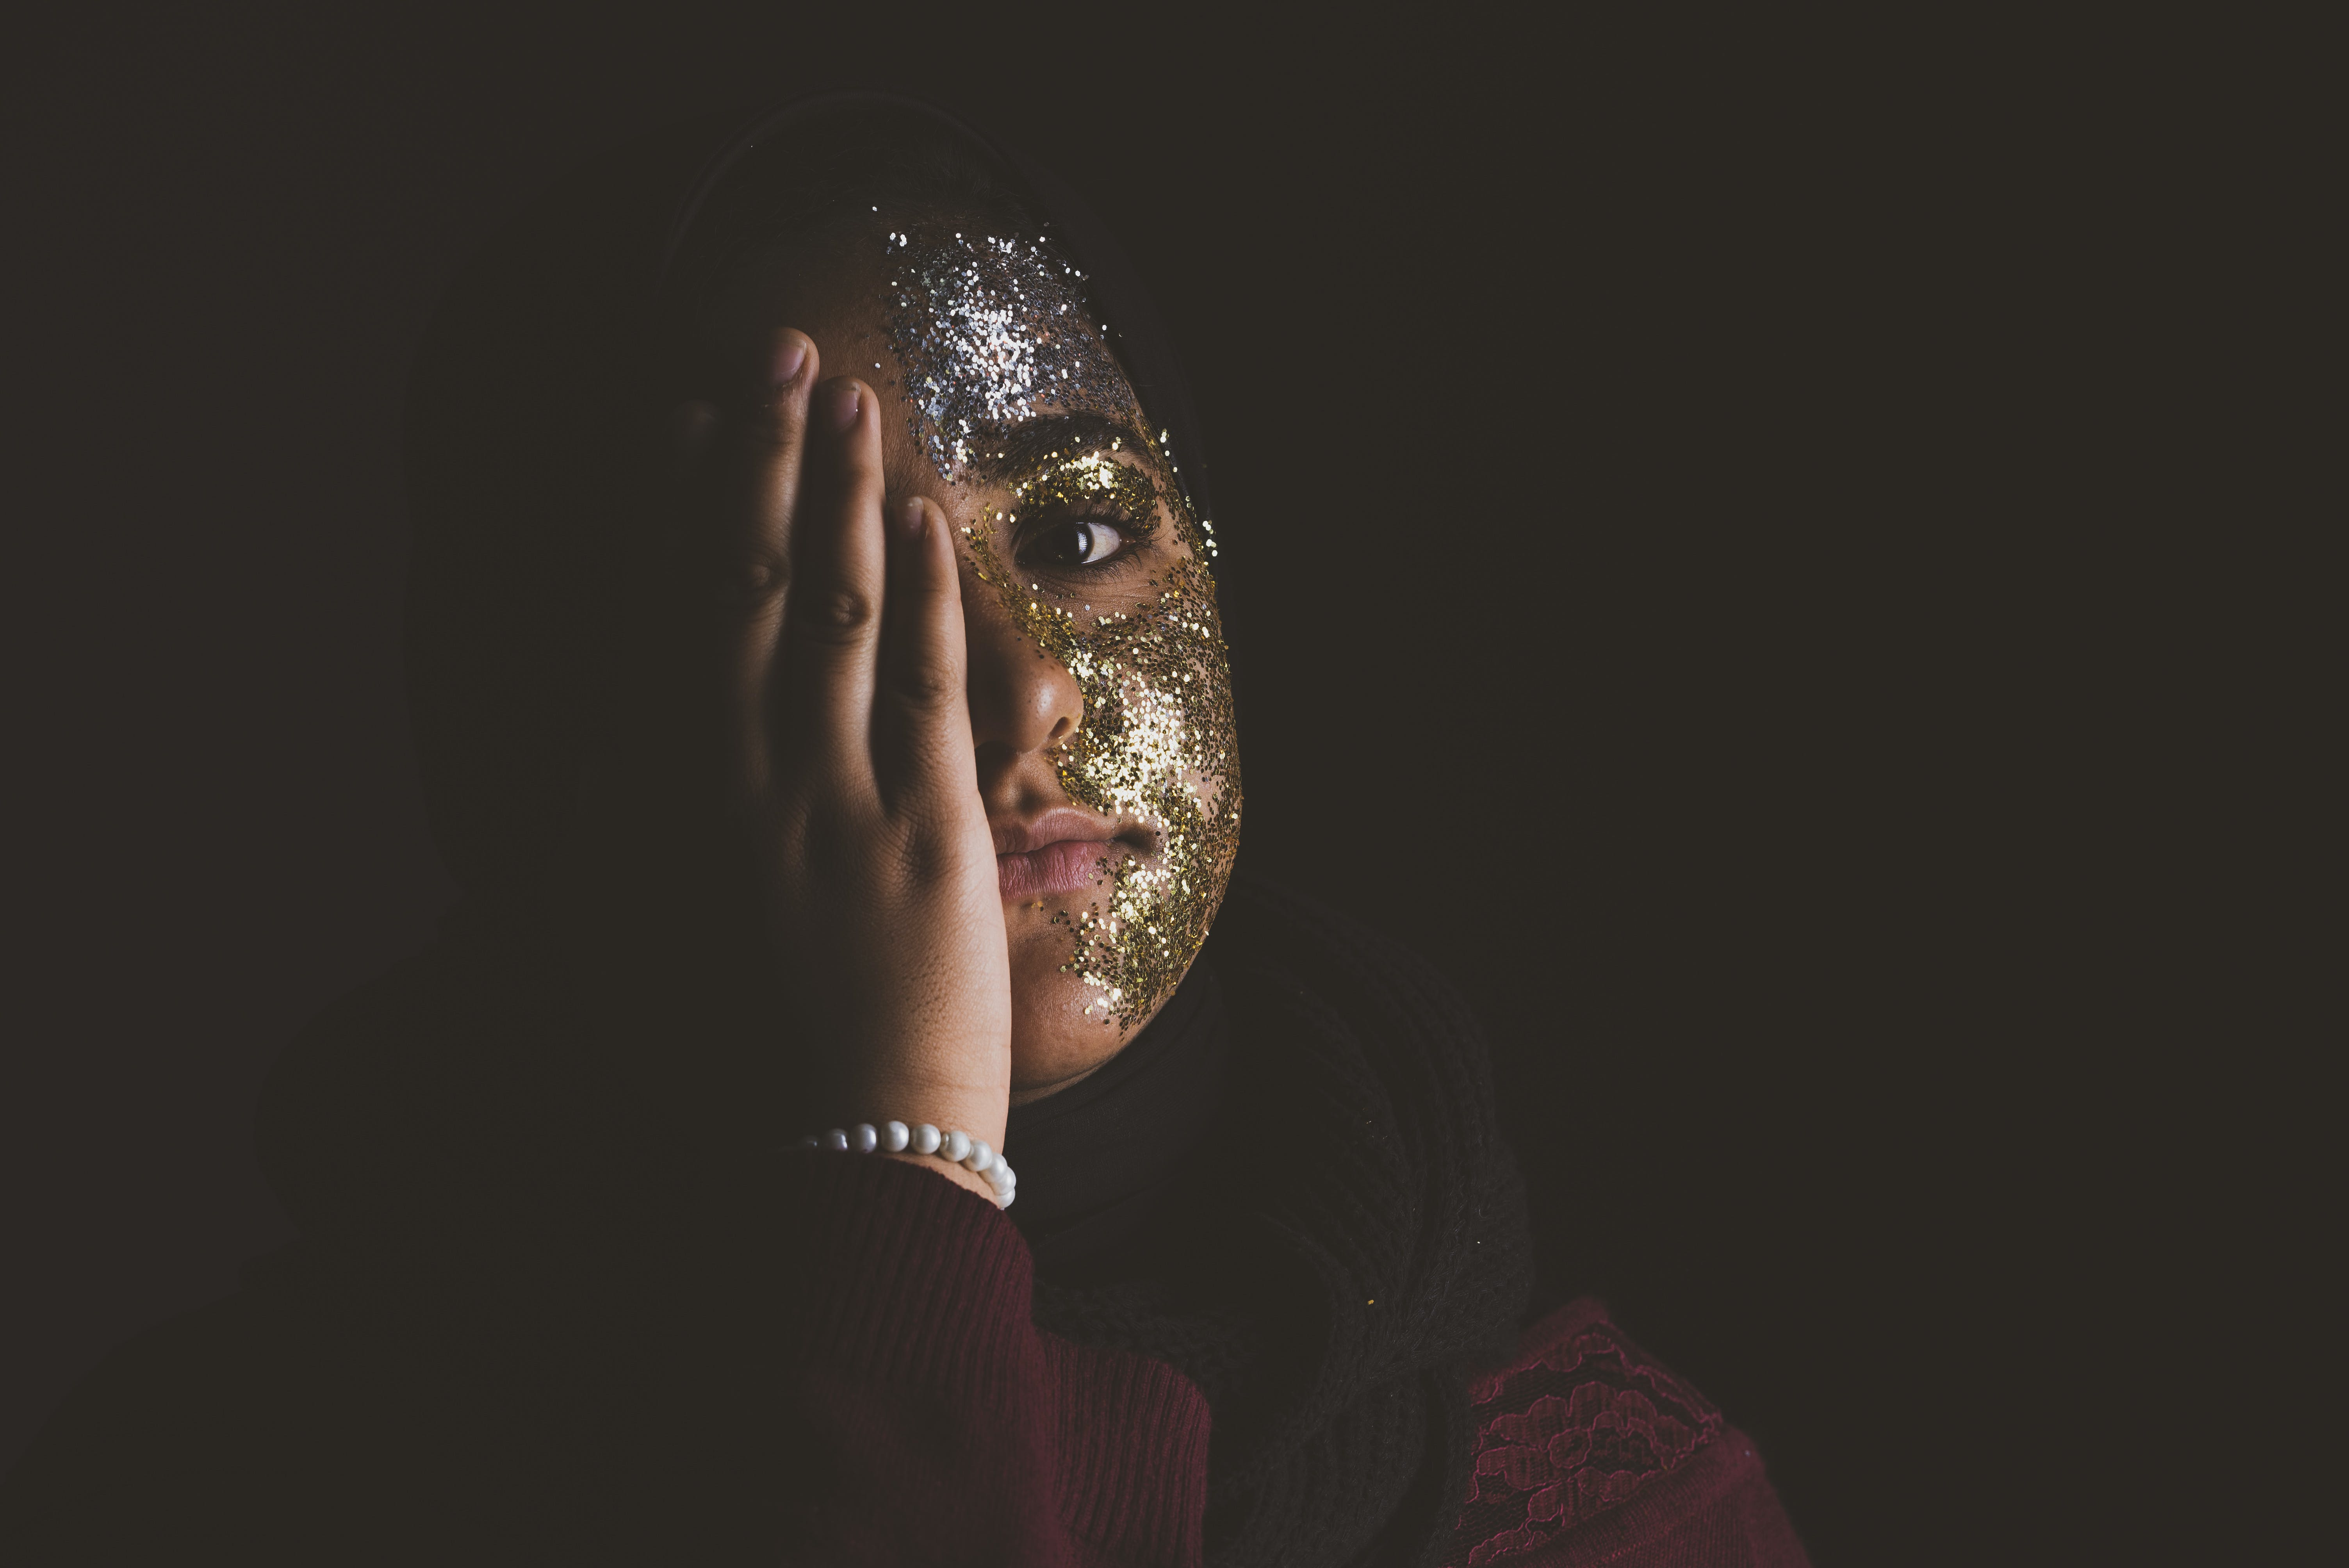 Woman Covering Her Right Eye